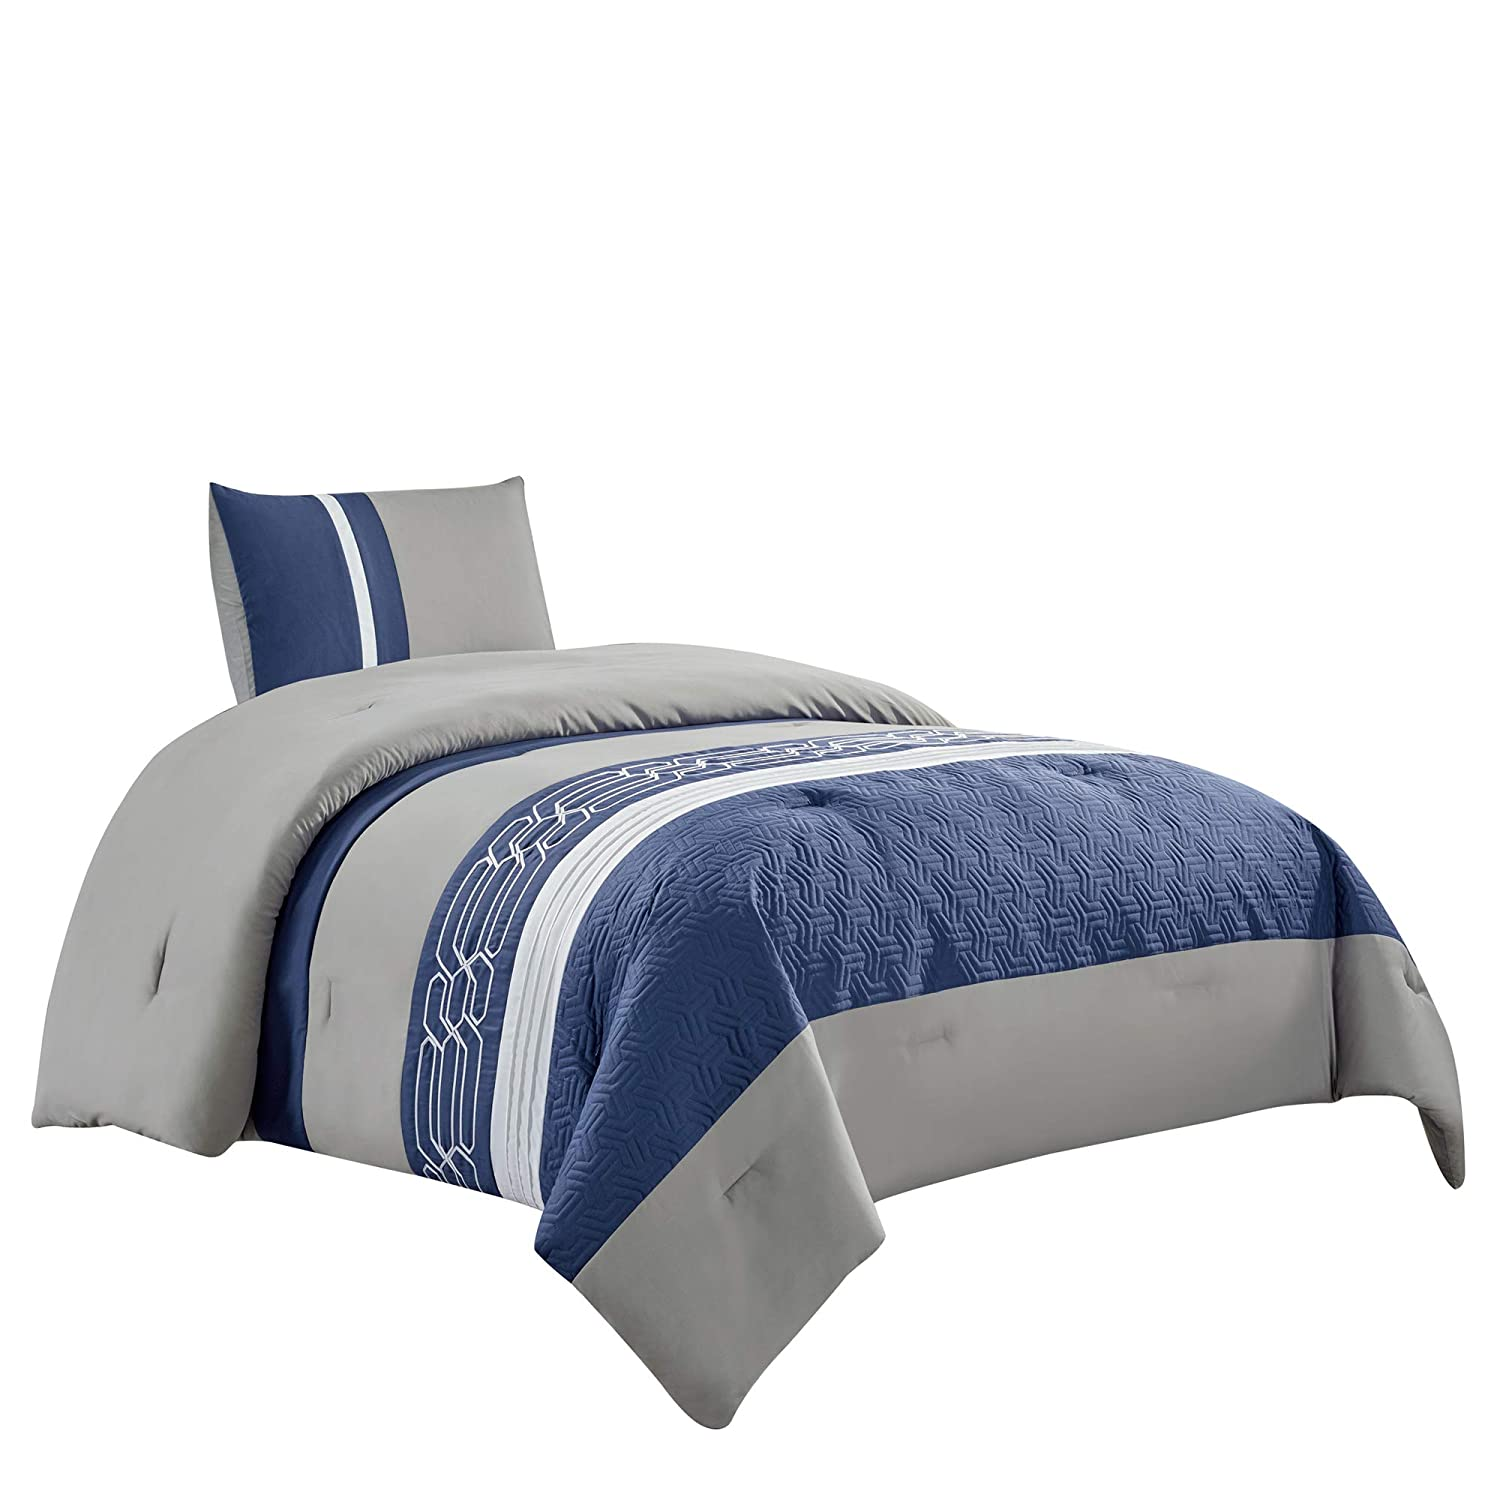 WPM WORLD PRODUCTS MART Embroidered Quilted Goose Down Alternative Comforter Set Twin or Queen Size Bedding Includes Blue/Grey/White Comforter and Pillow Shams- LOLA (Twin)